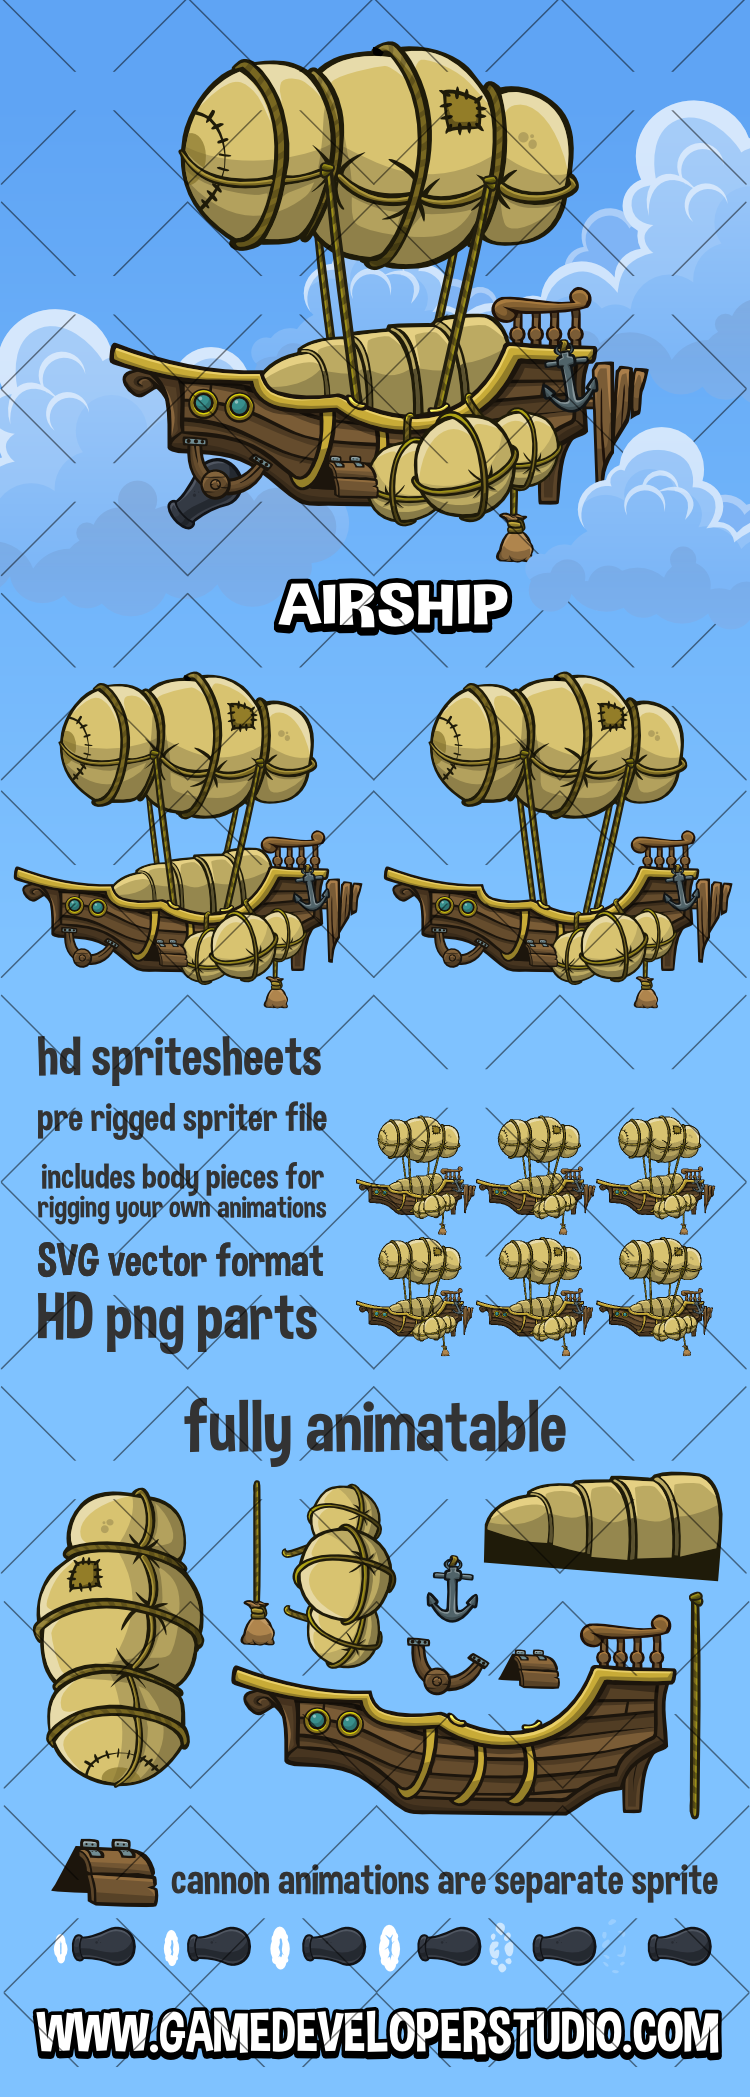 Animated airship 2d game asset